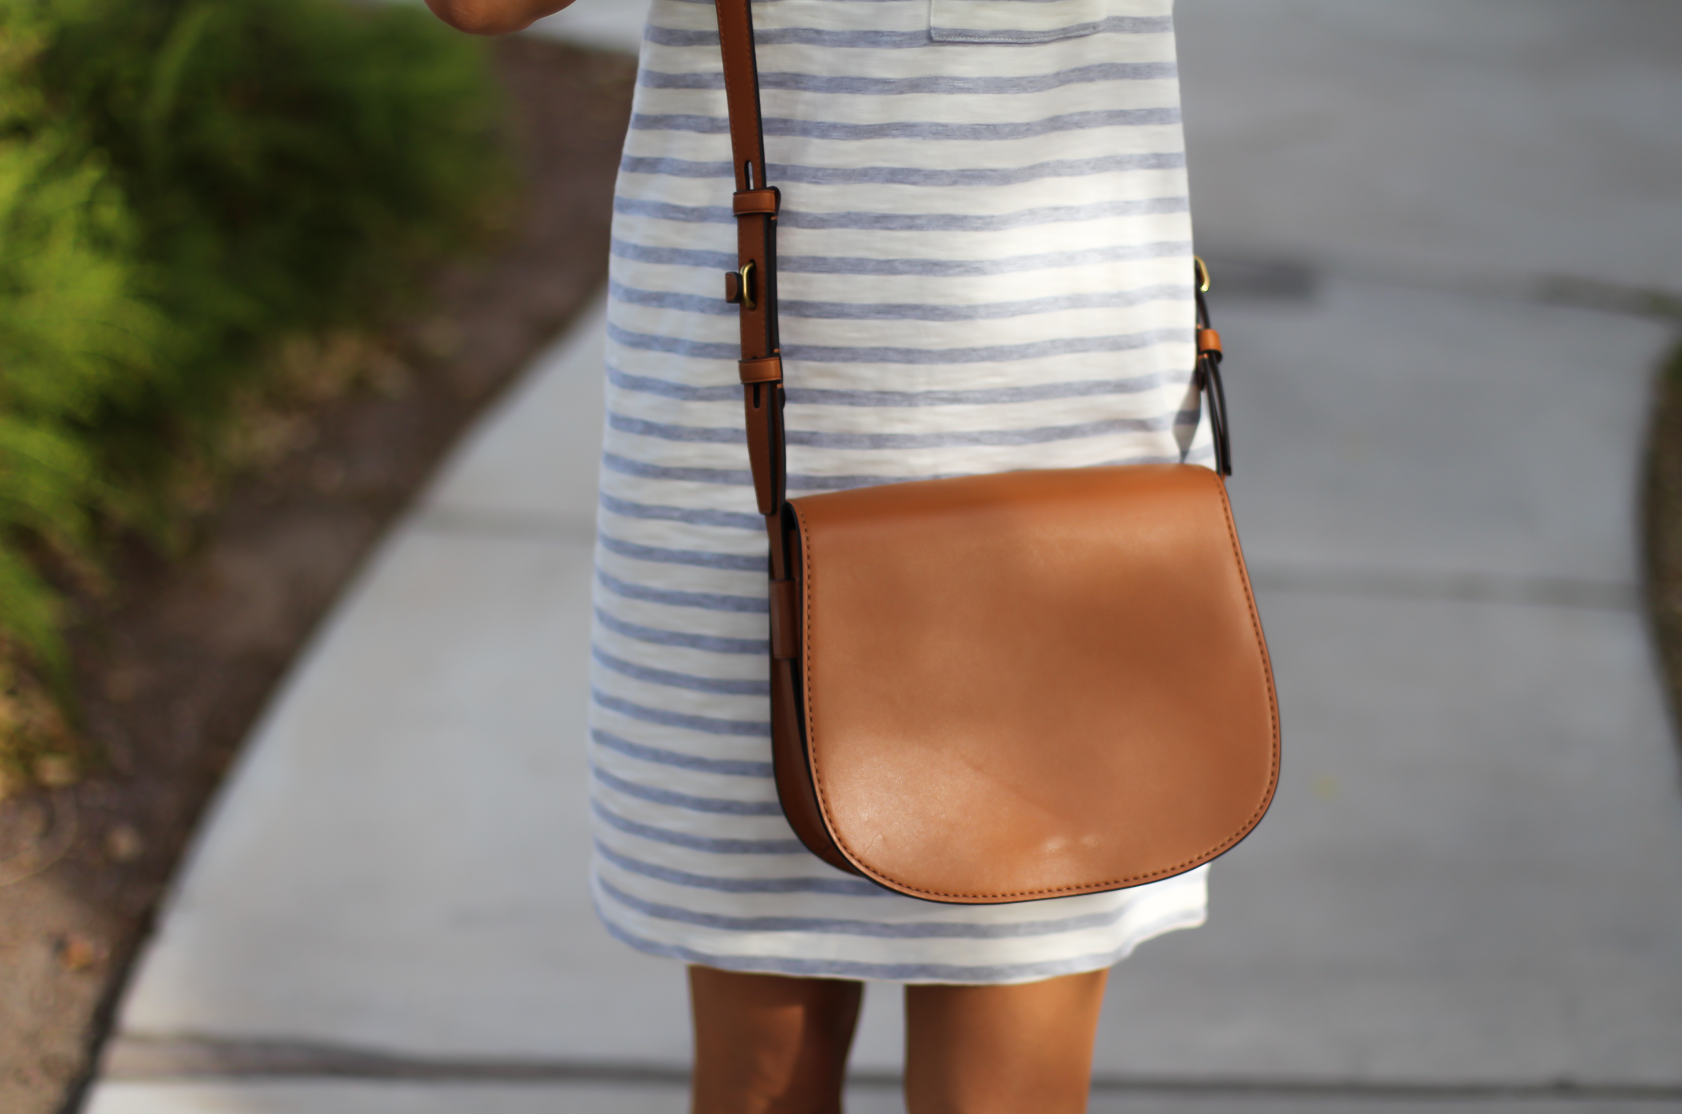 Grey Striped Button Back Short Sleeve Dress, Cognac Leather Wedge Sandals, Cognac Saddlebag, Madewell, Tory Burch 18